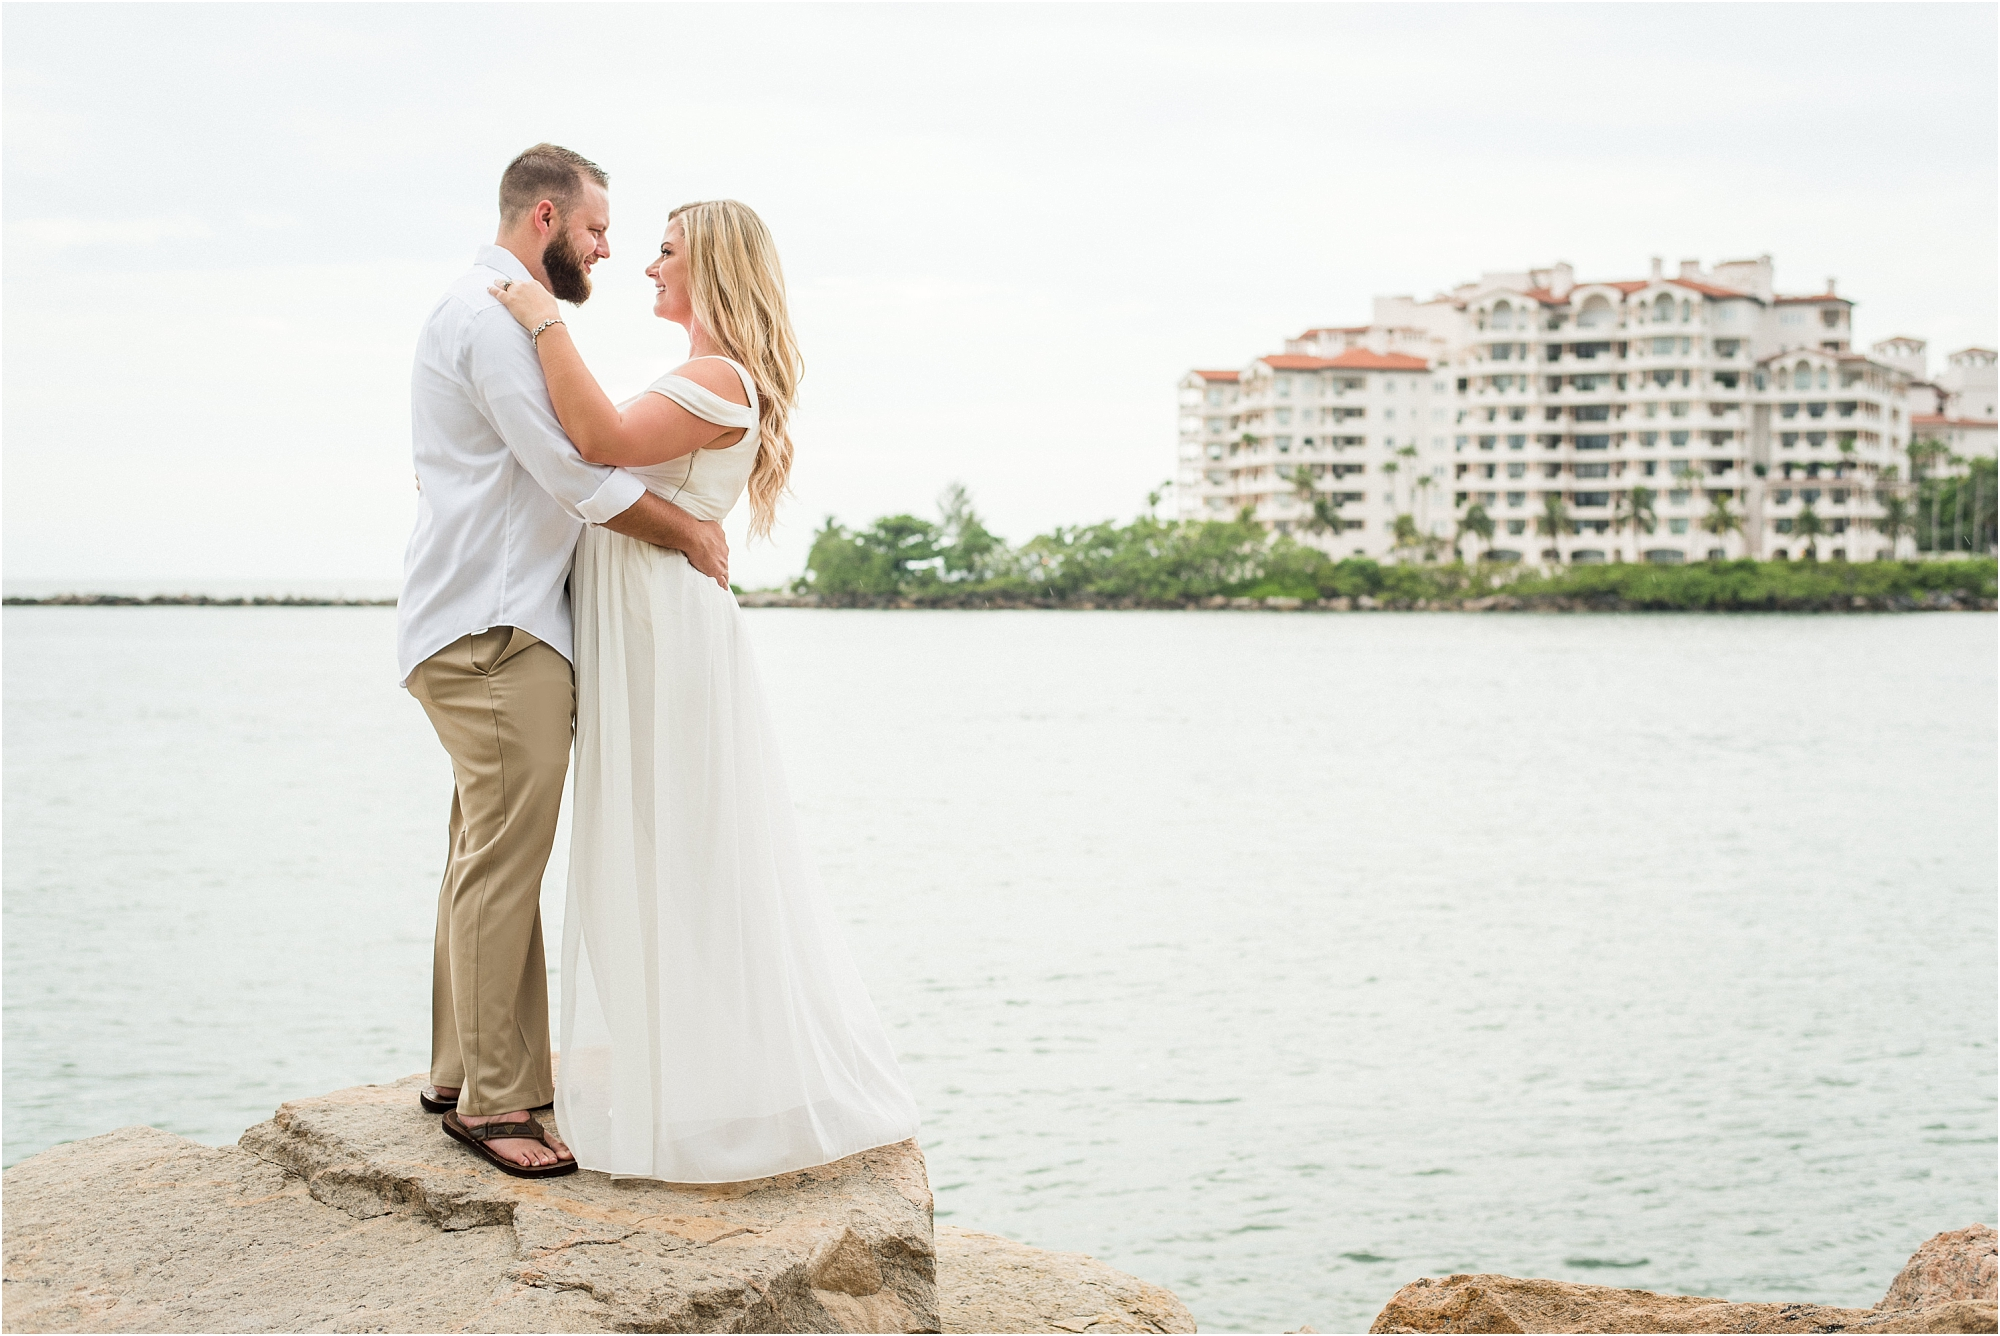 south pointe park-anniversary outdoor photo session-jessenia-gonzalez-weddings_1294.jpg